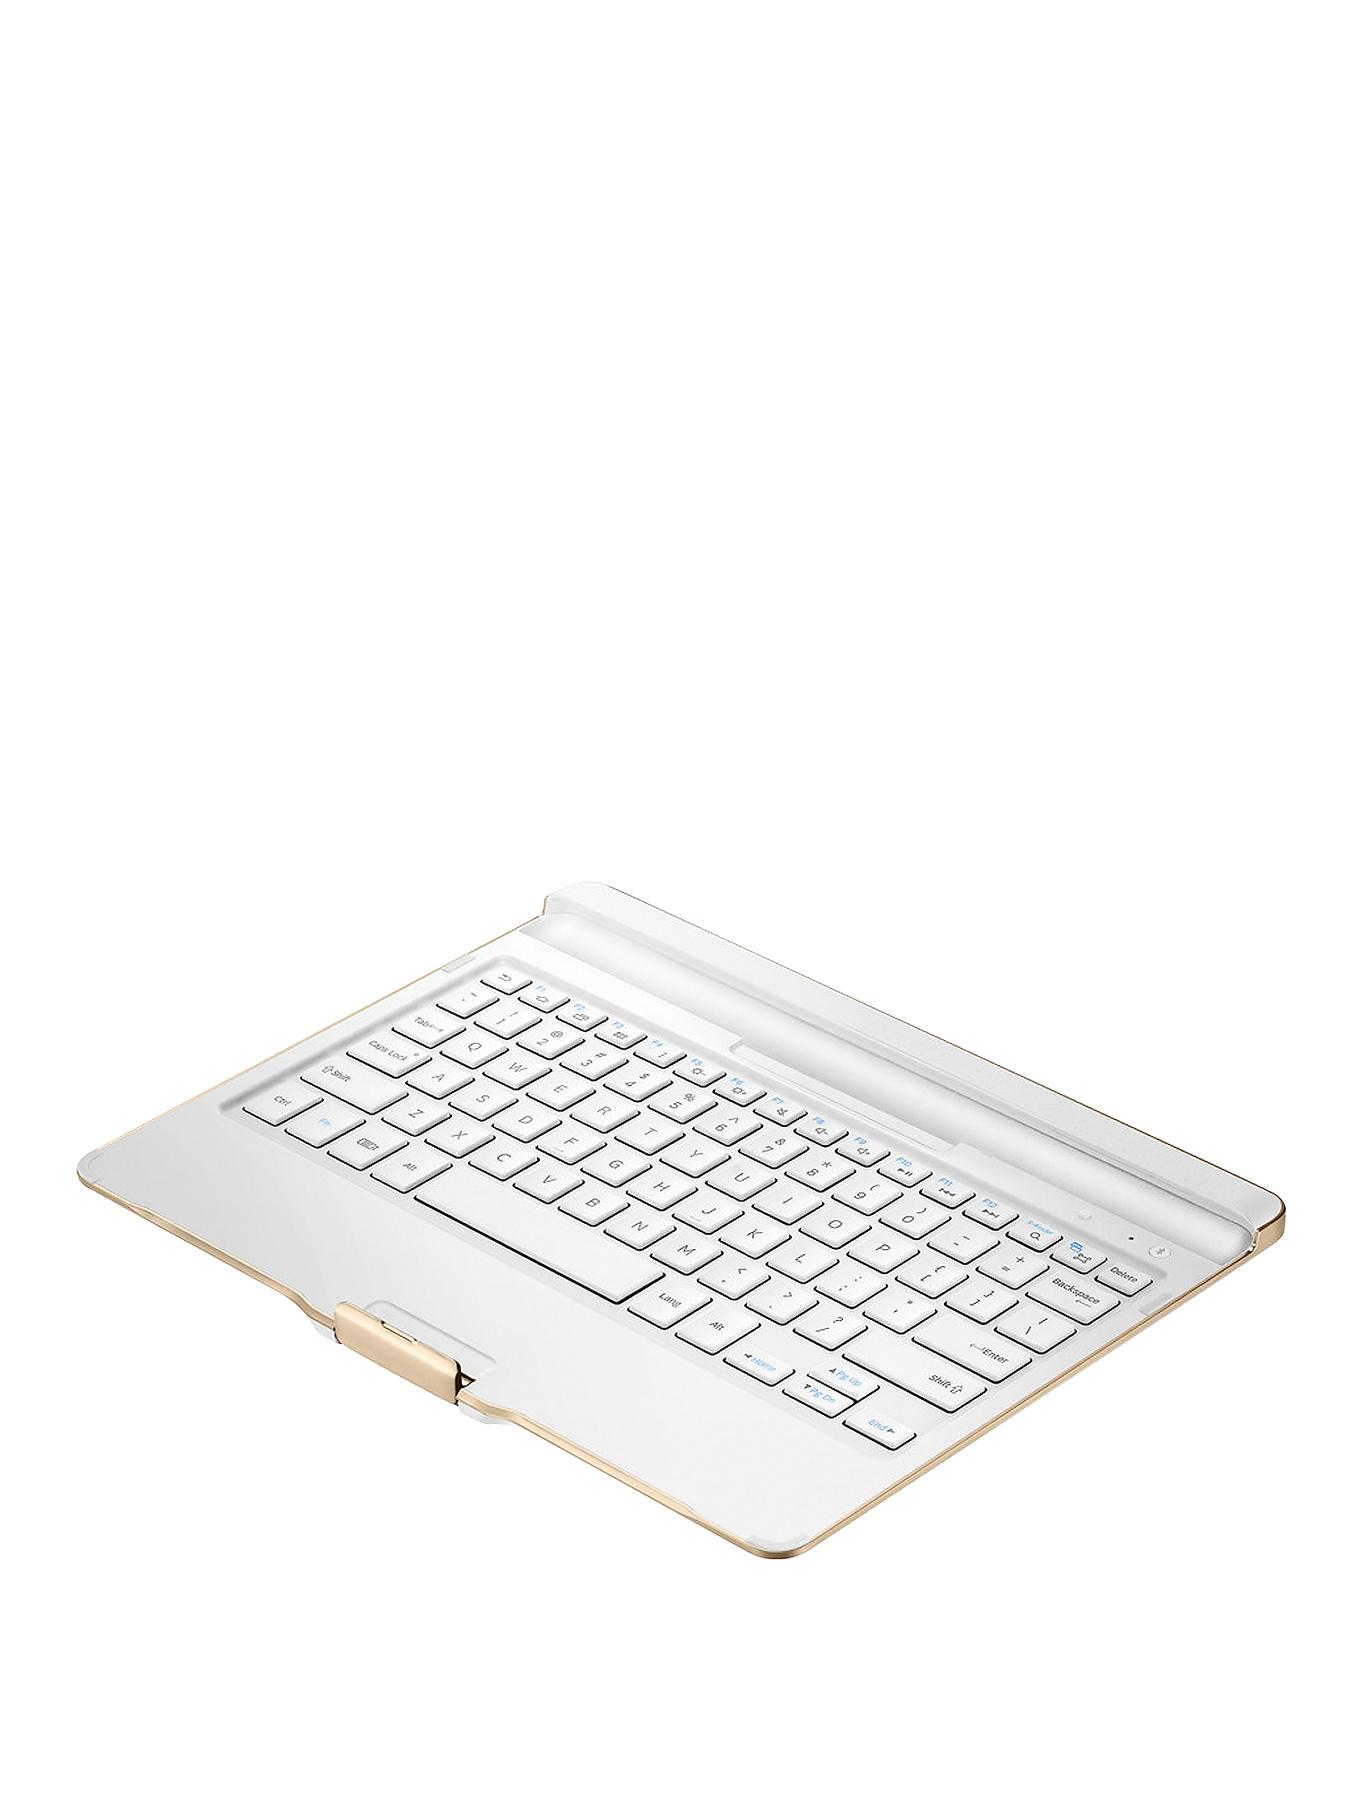 Samsung Galaxy Tab S 10.5 inch Bluetooth Keyboard Cover - White - White, White